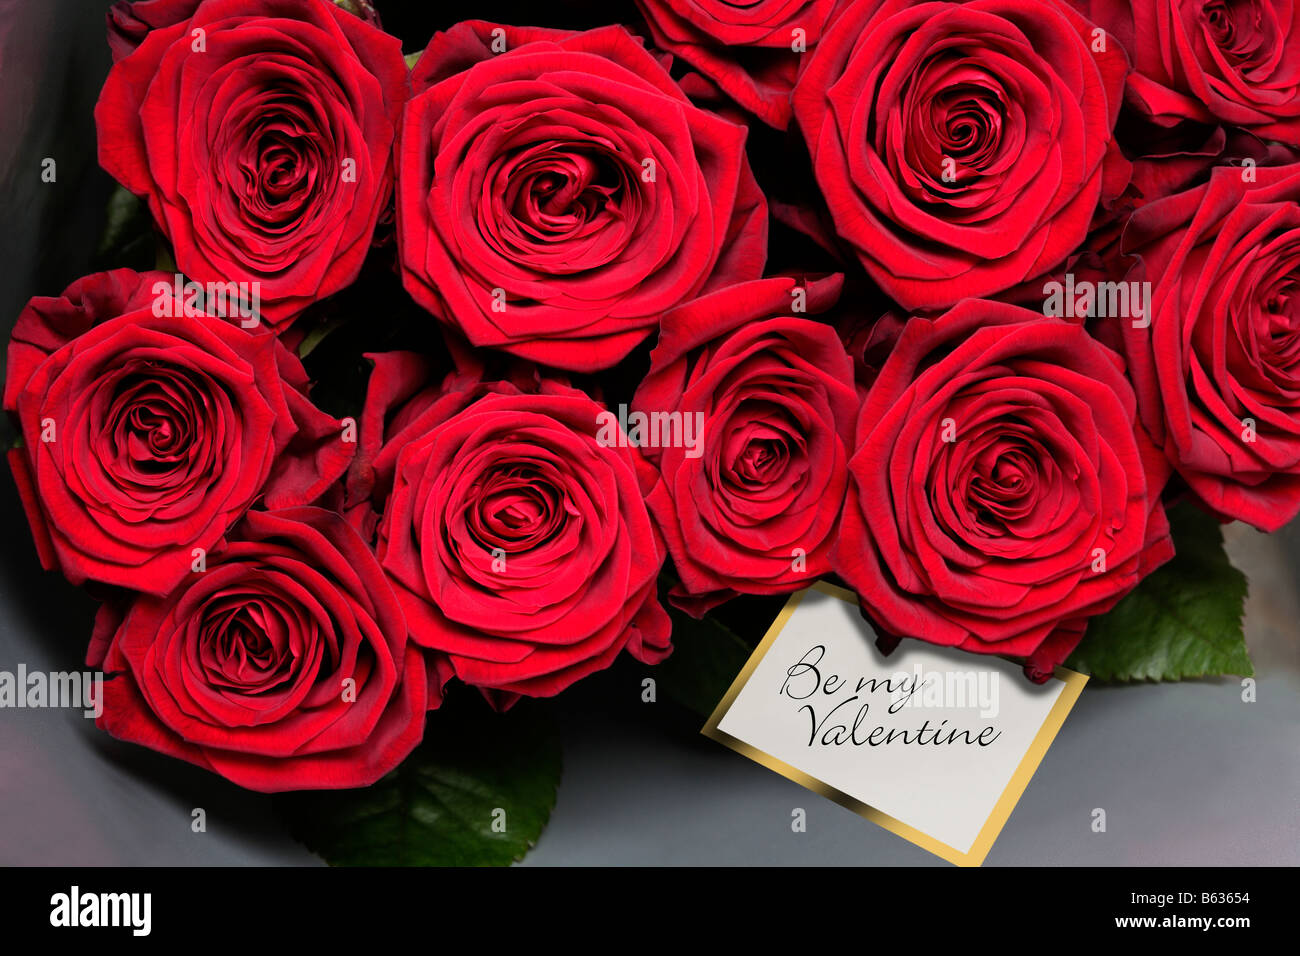 Red Roses for Valentine's Day - Stock Image